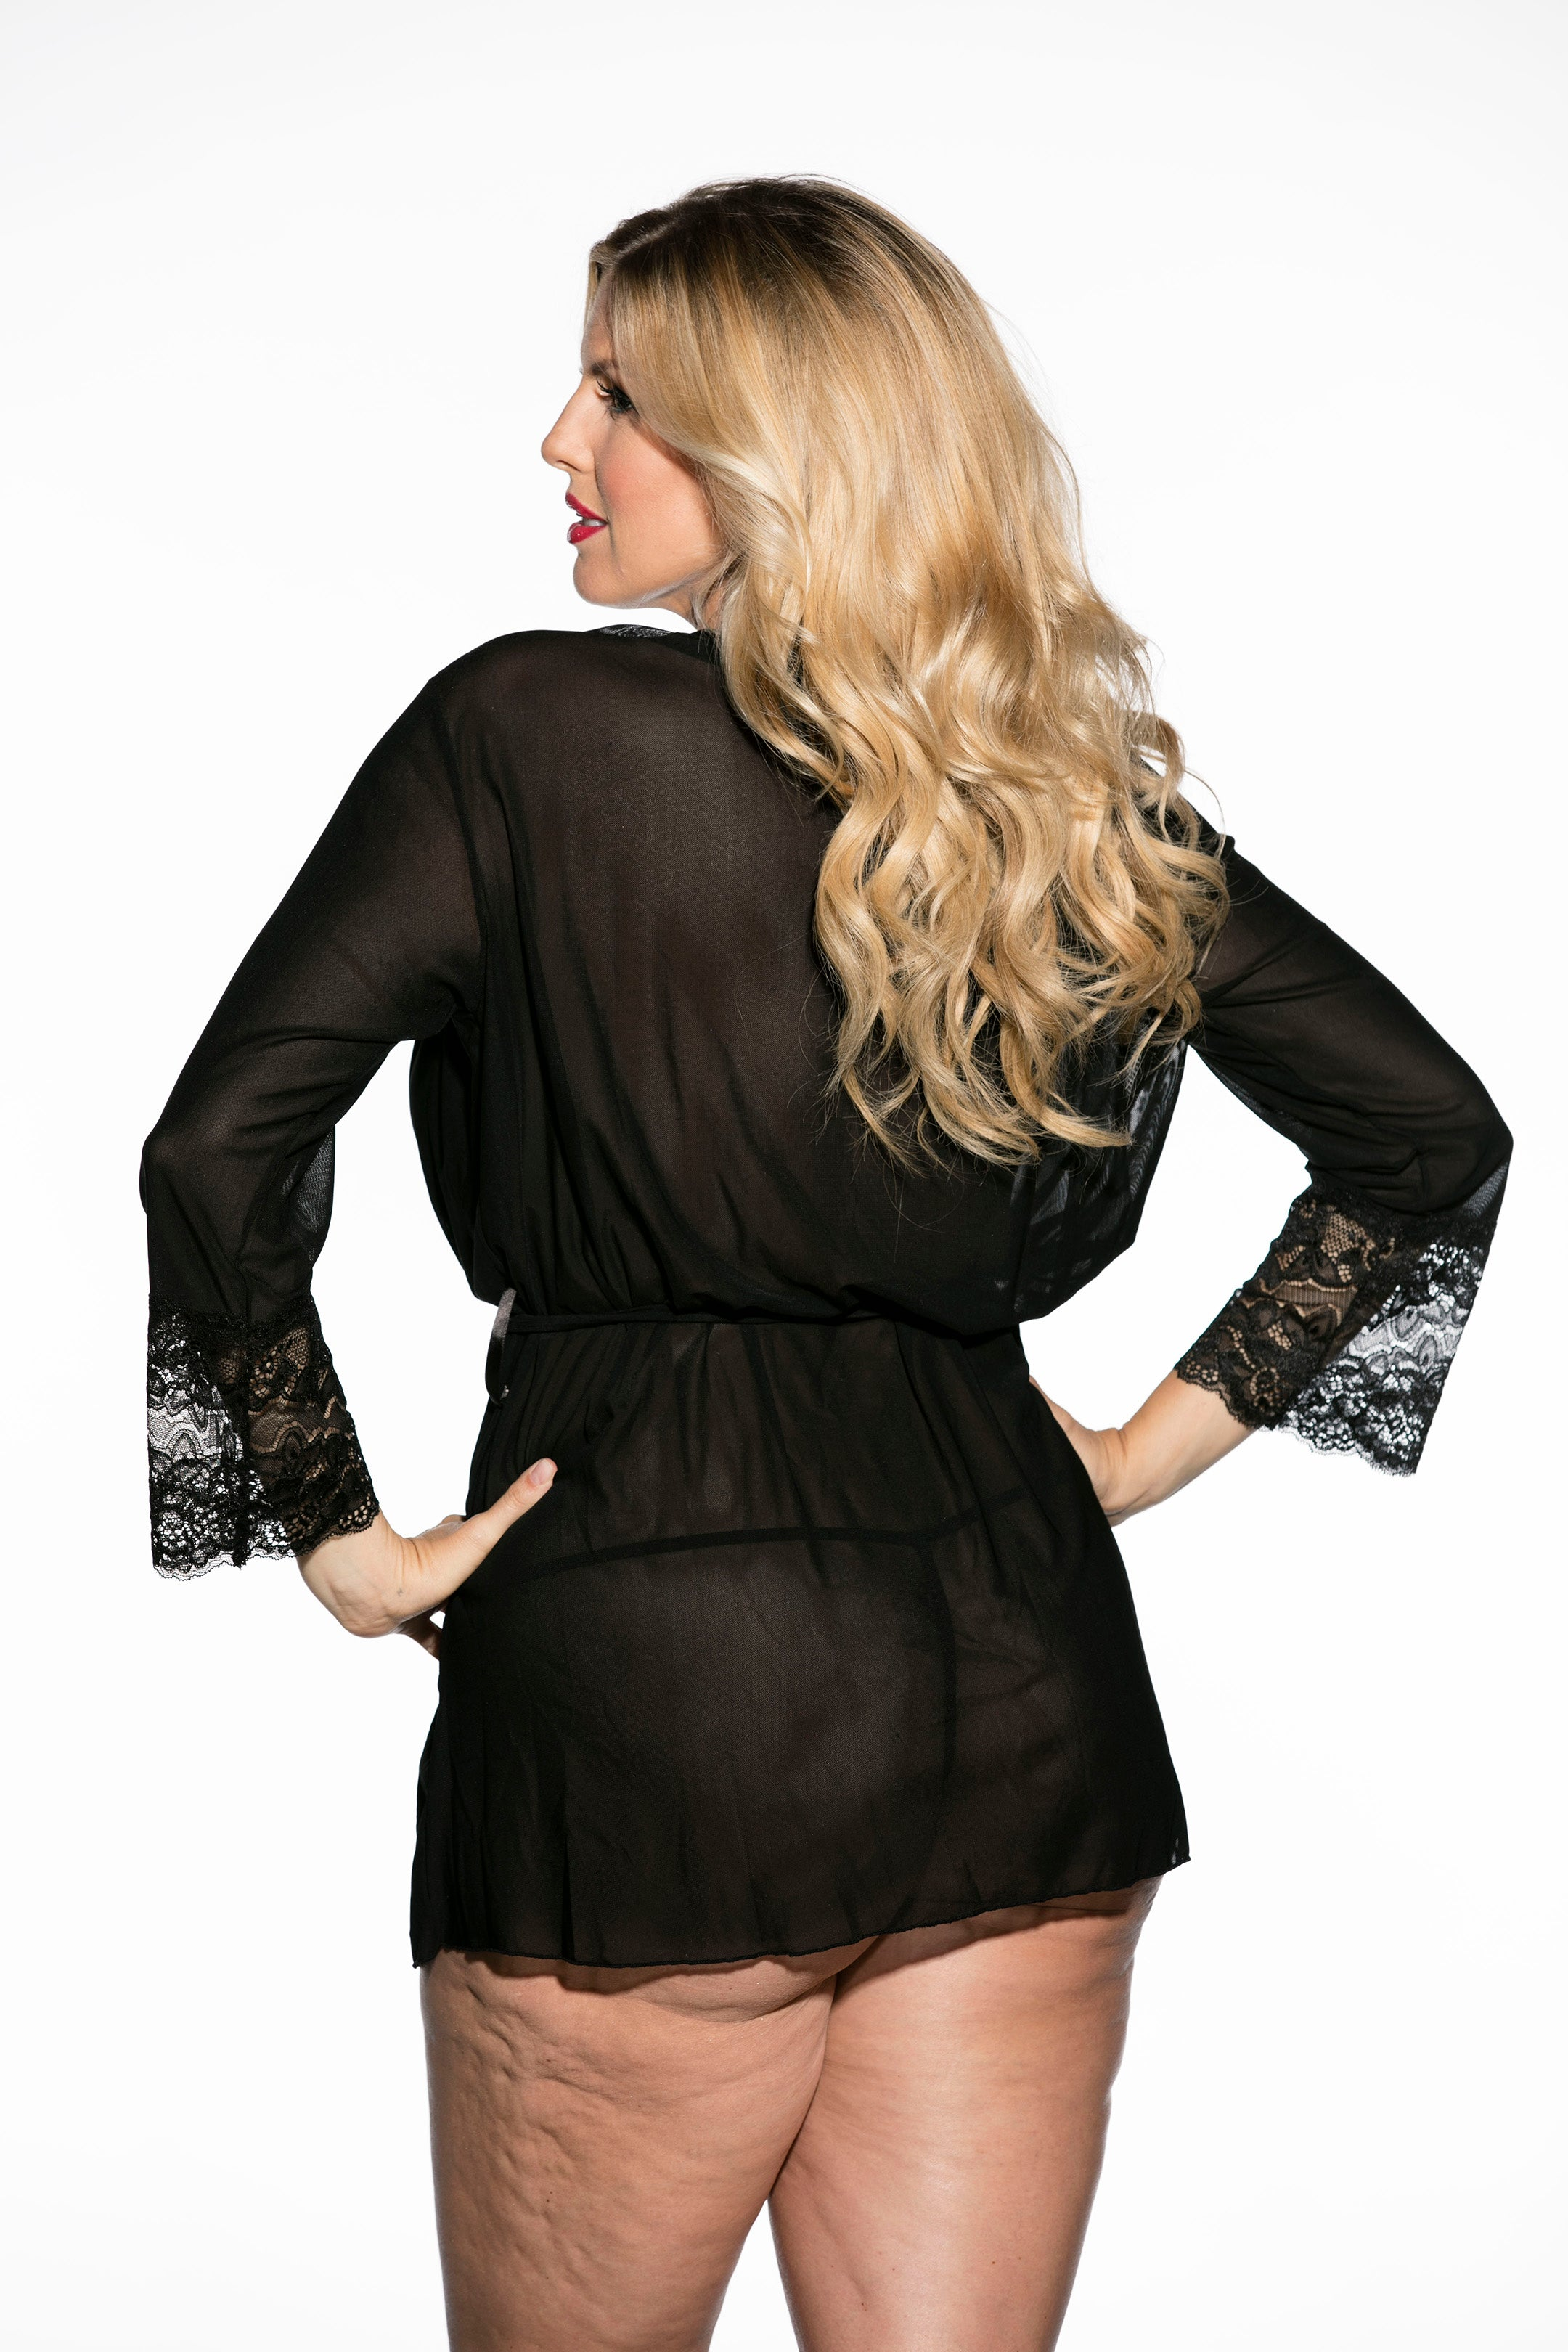 Chiffon stretch knit and stretch lace robe with tie belt and matching g-string.